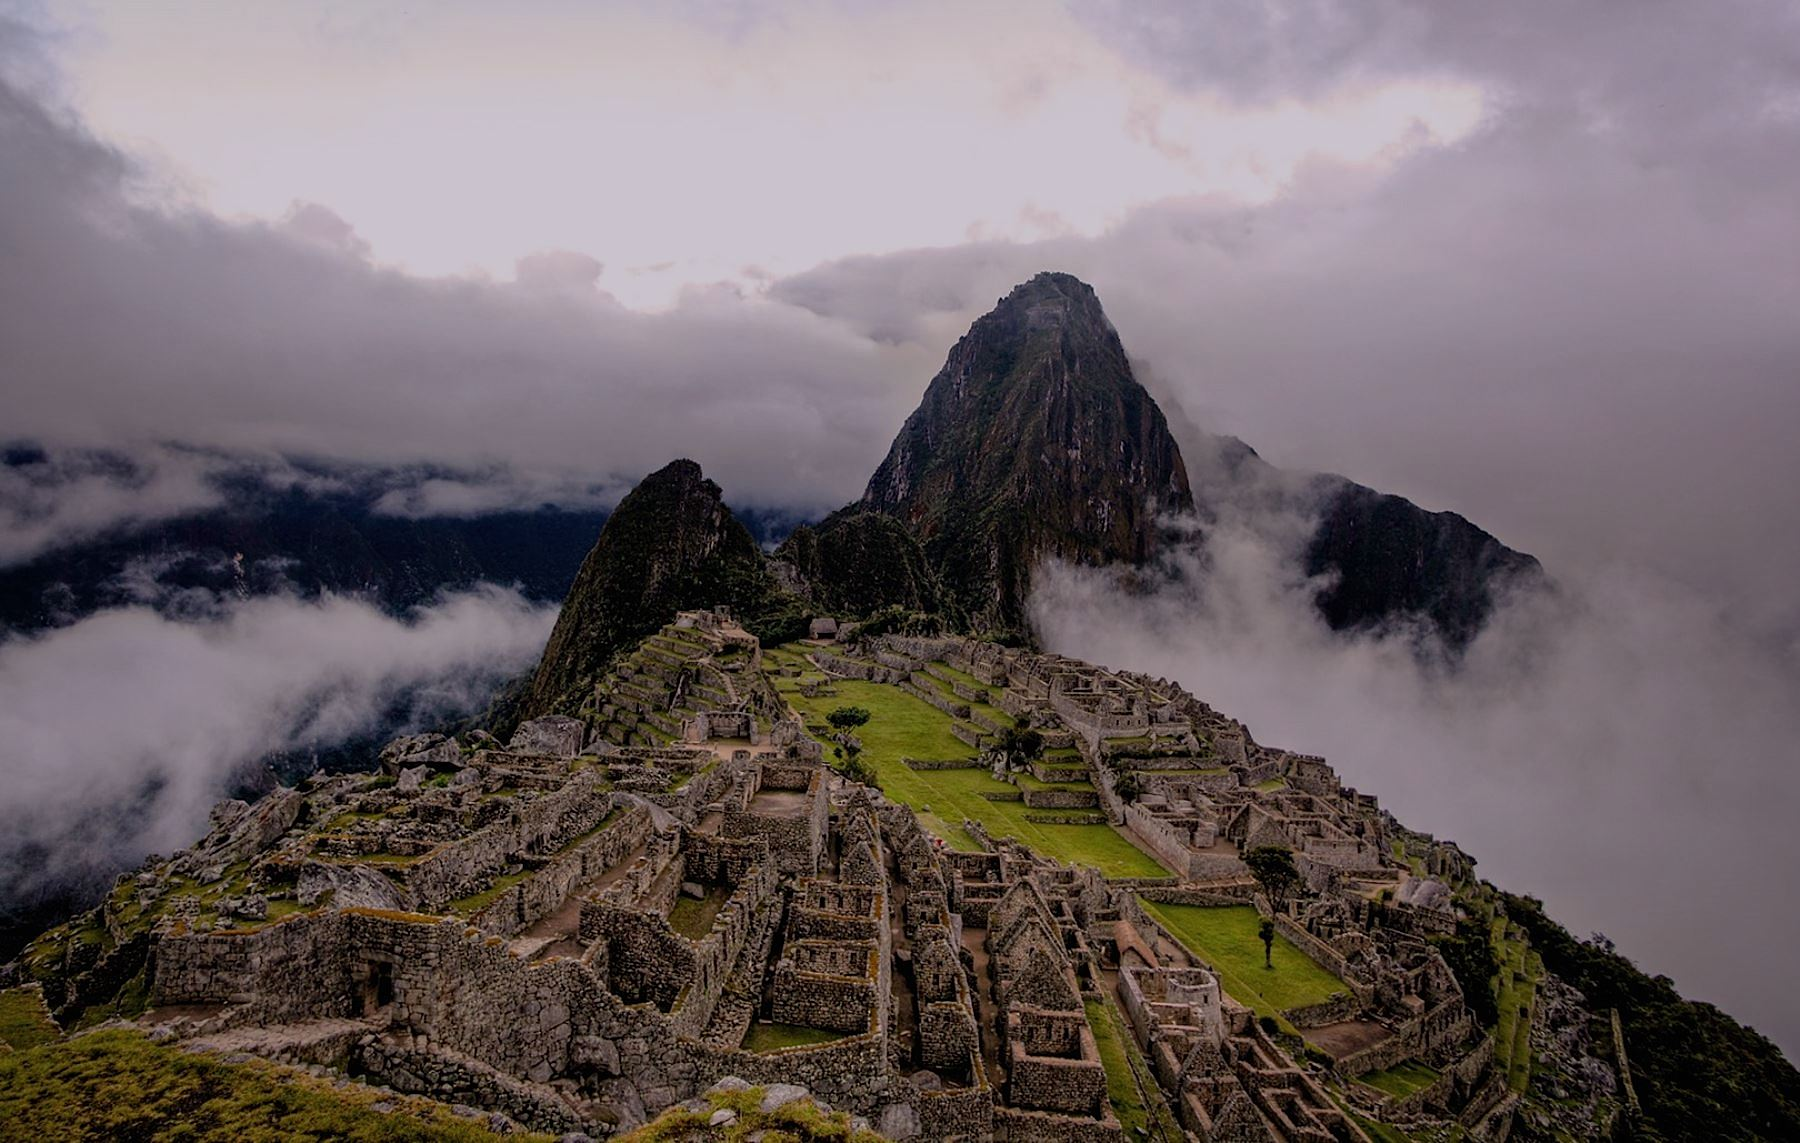 Sunrise Machu Picchu private tour